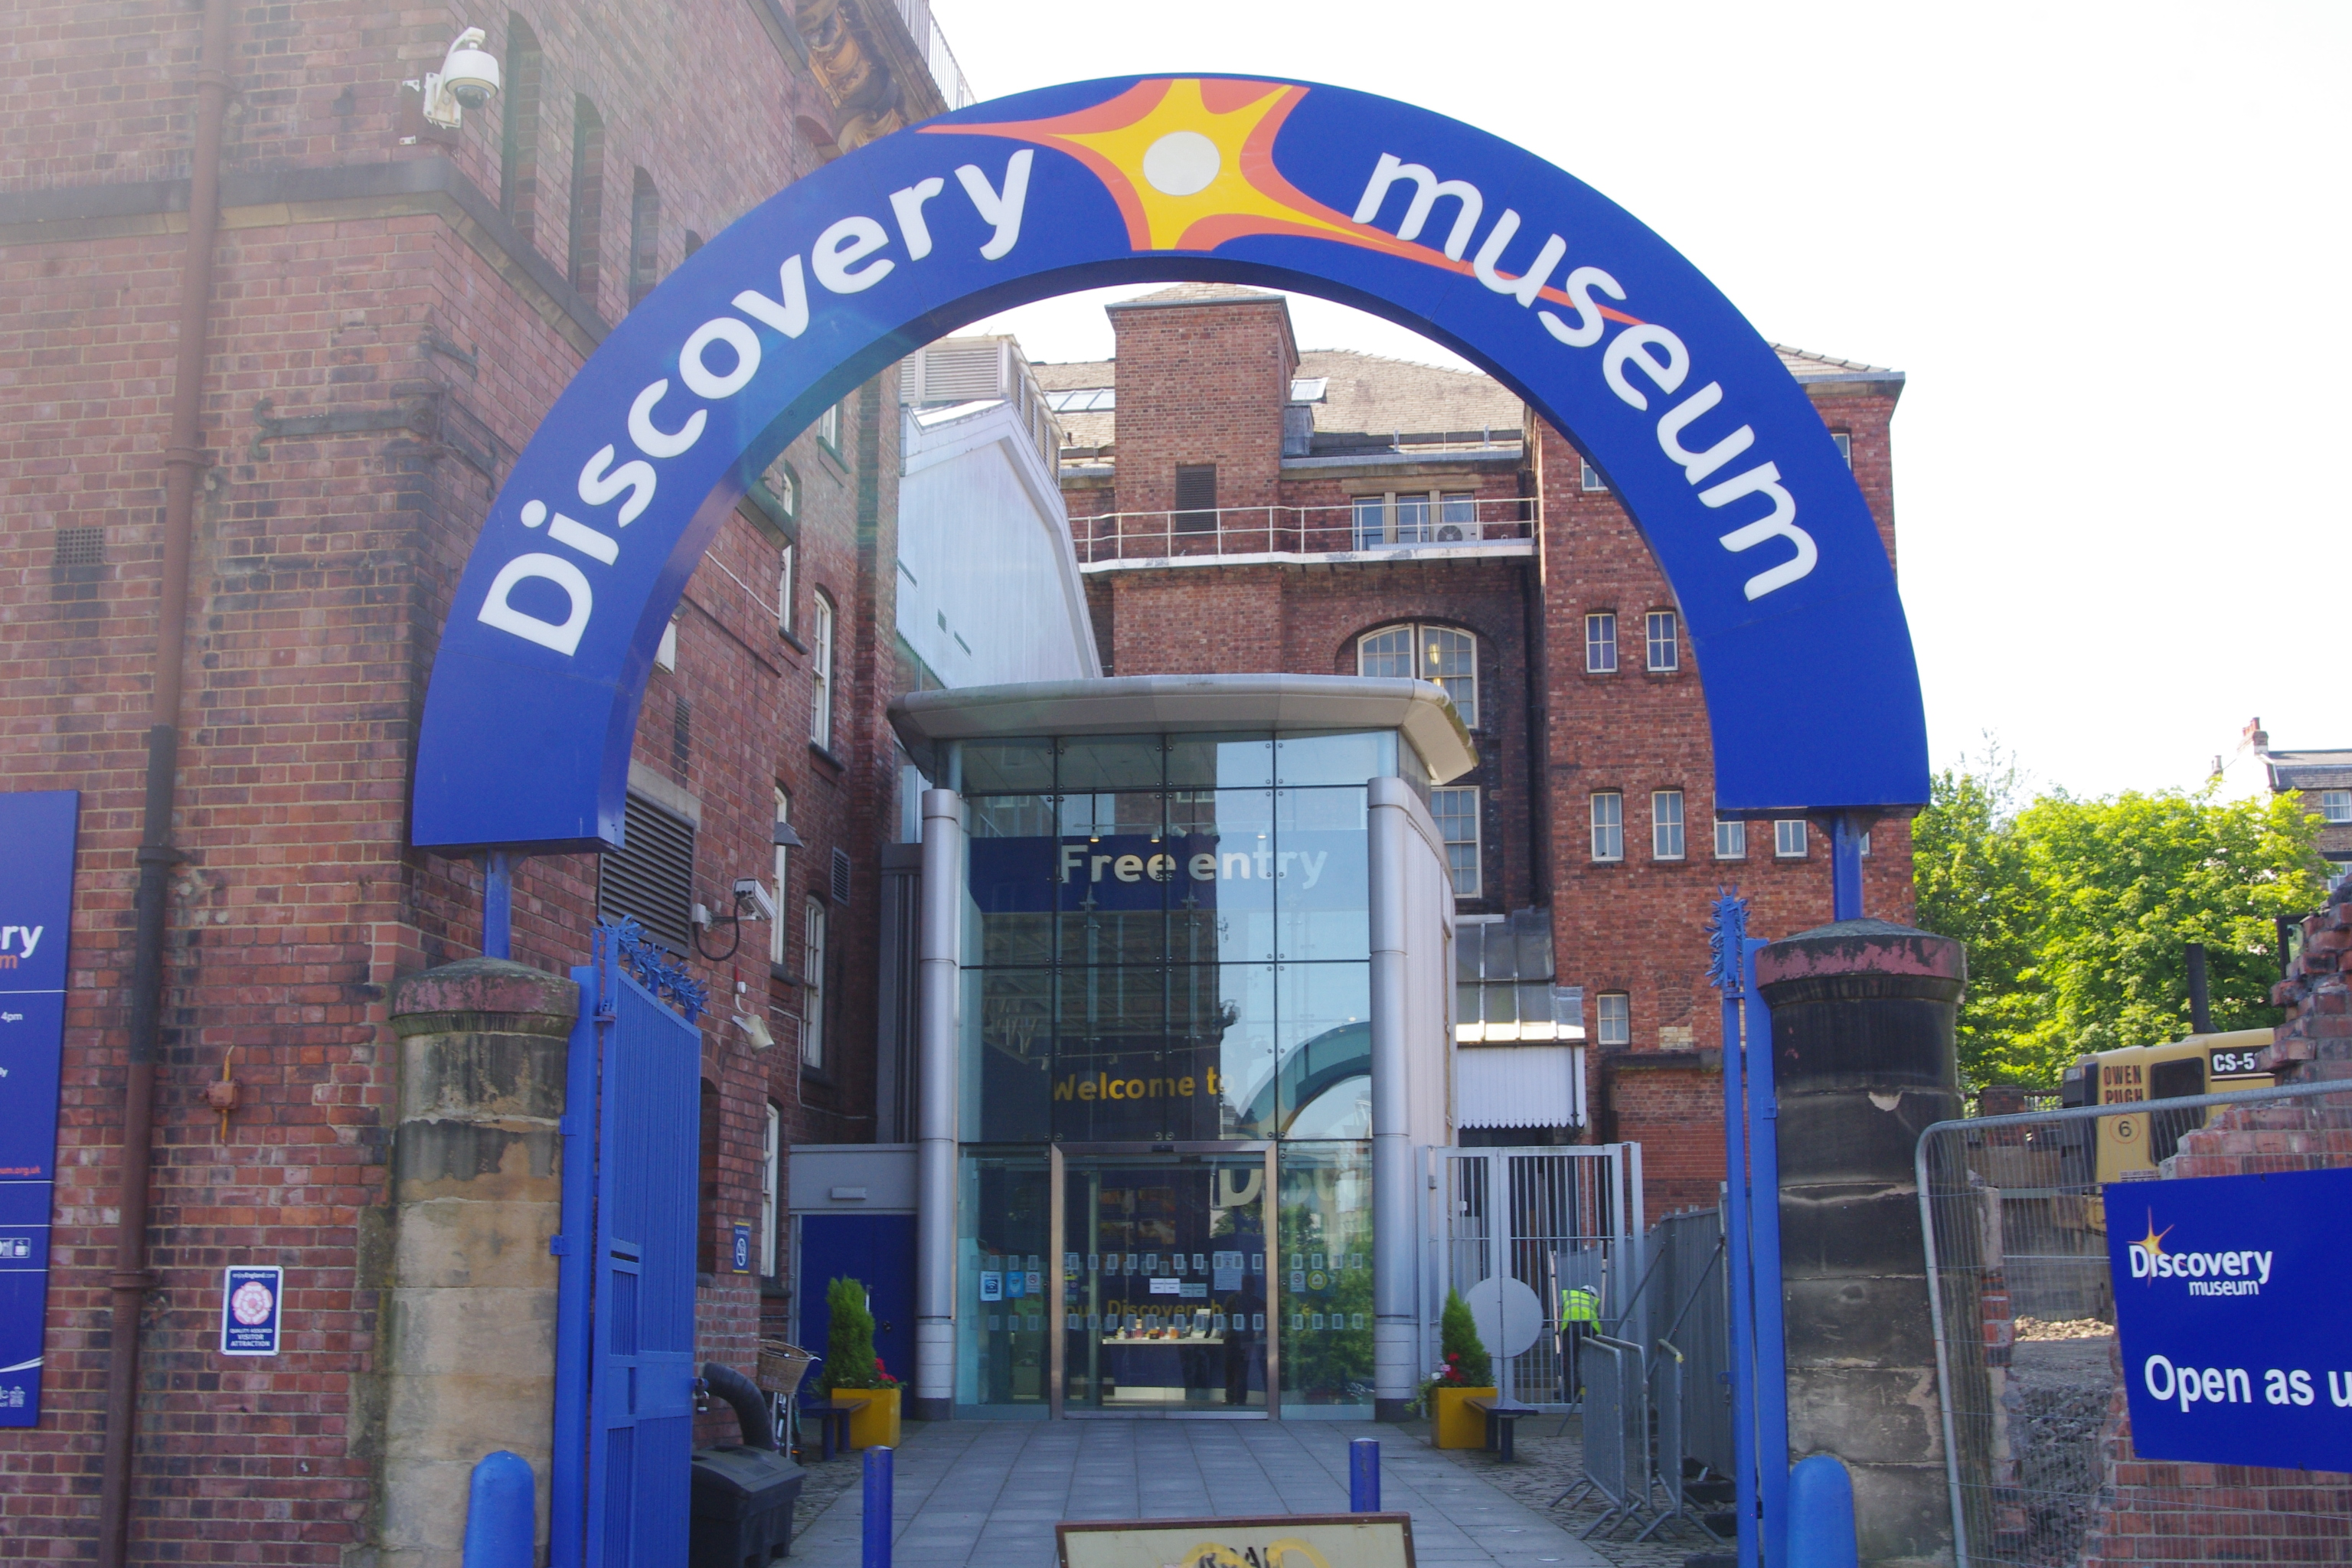 Discovery Museum Newcastle